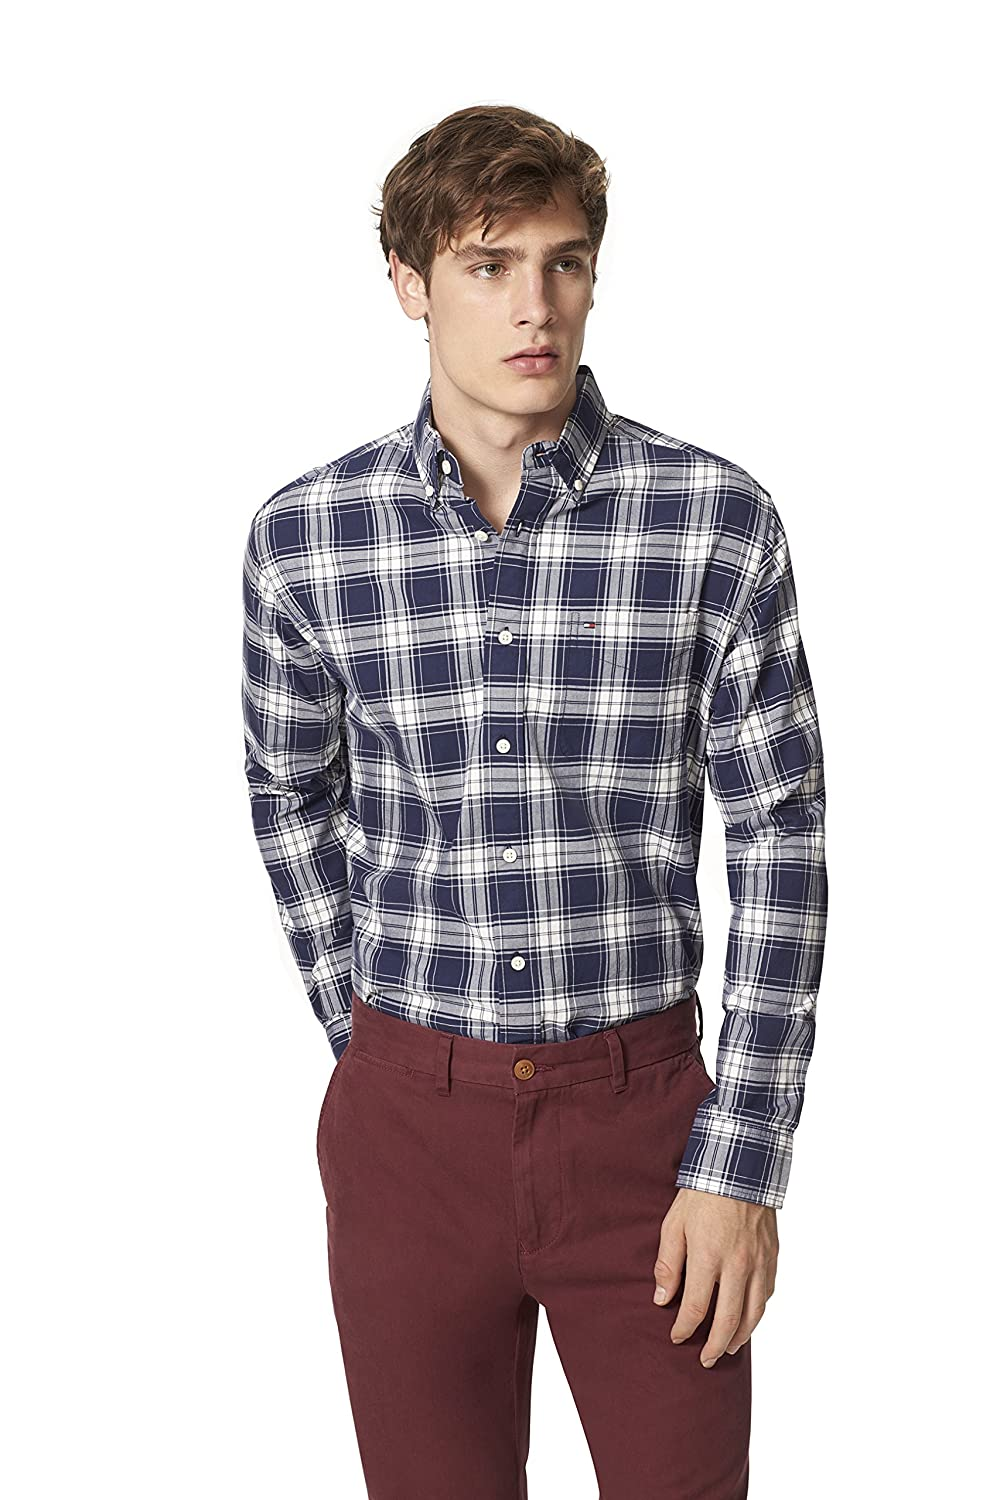 Tommy Hilfiger Men's Sawyer Plaid Shirt 8814432